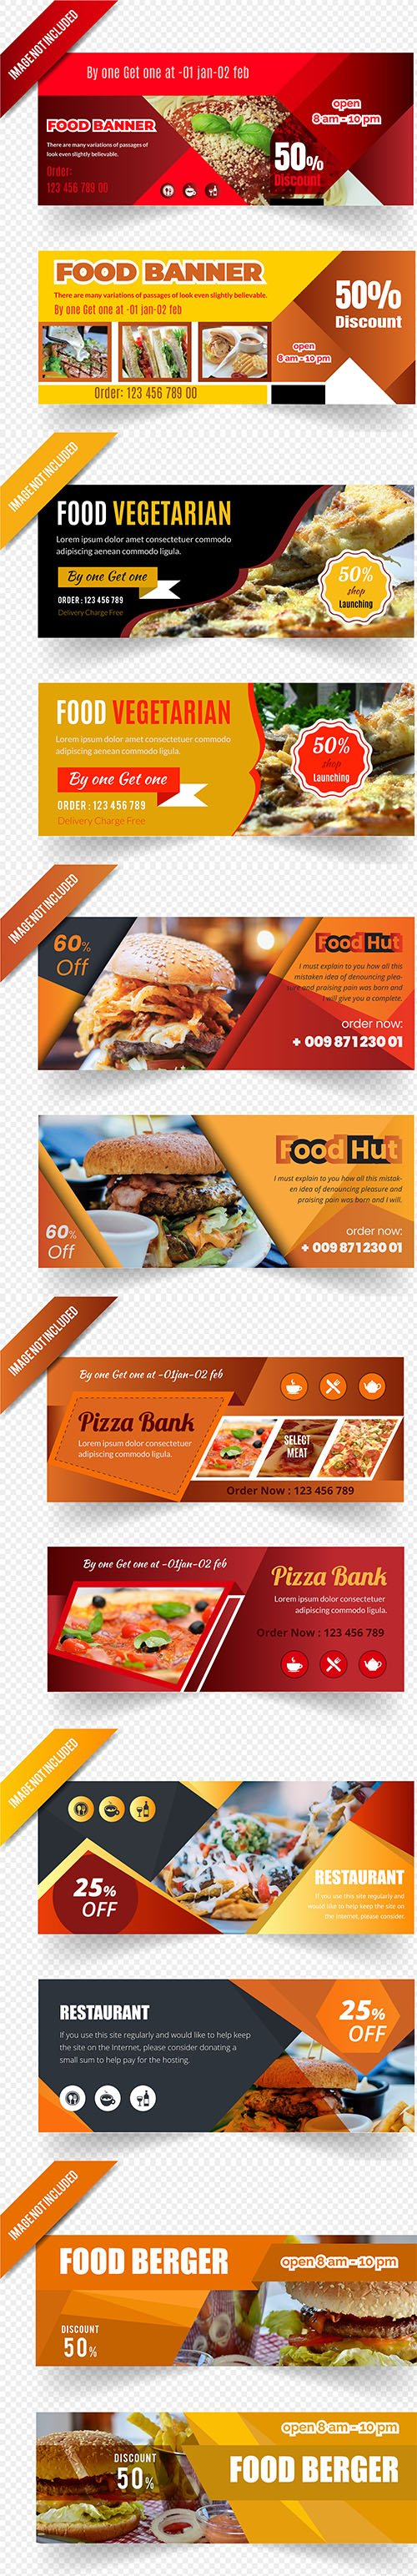 Banners for Cafes and Restaurants - Vector Clipart